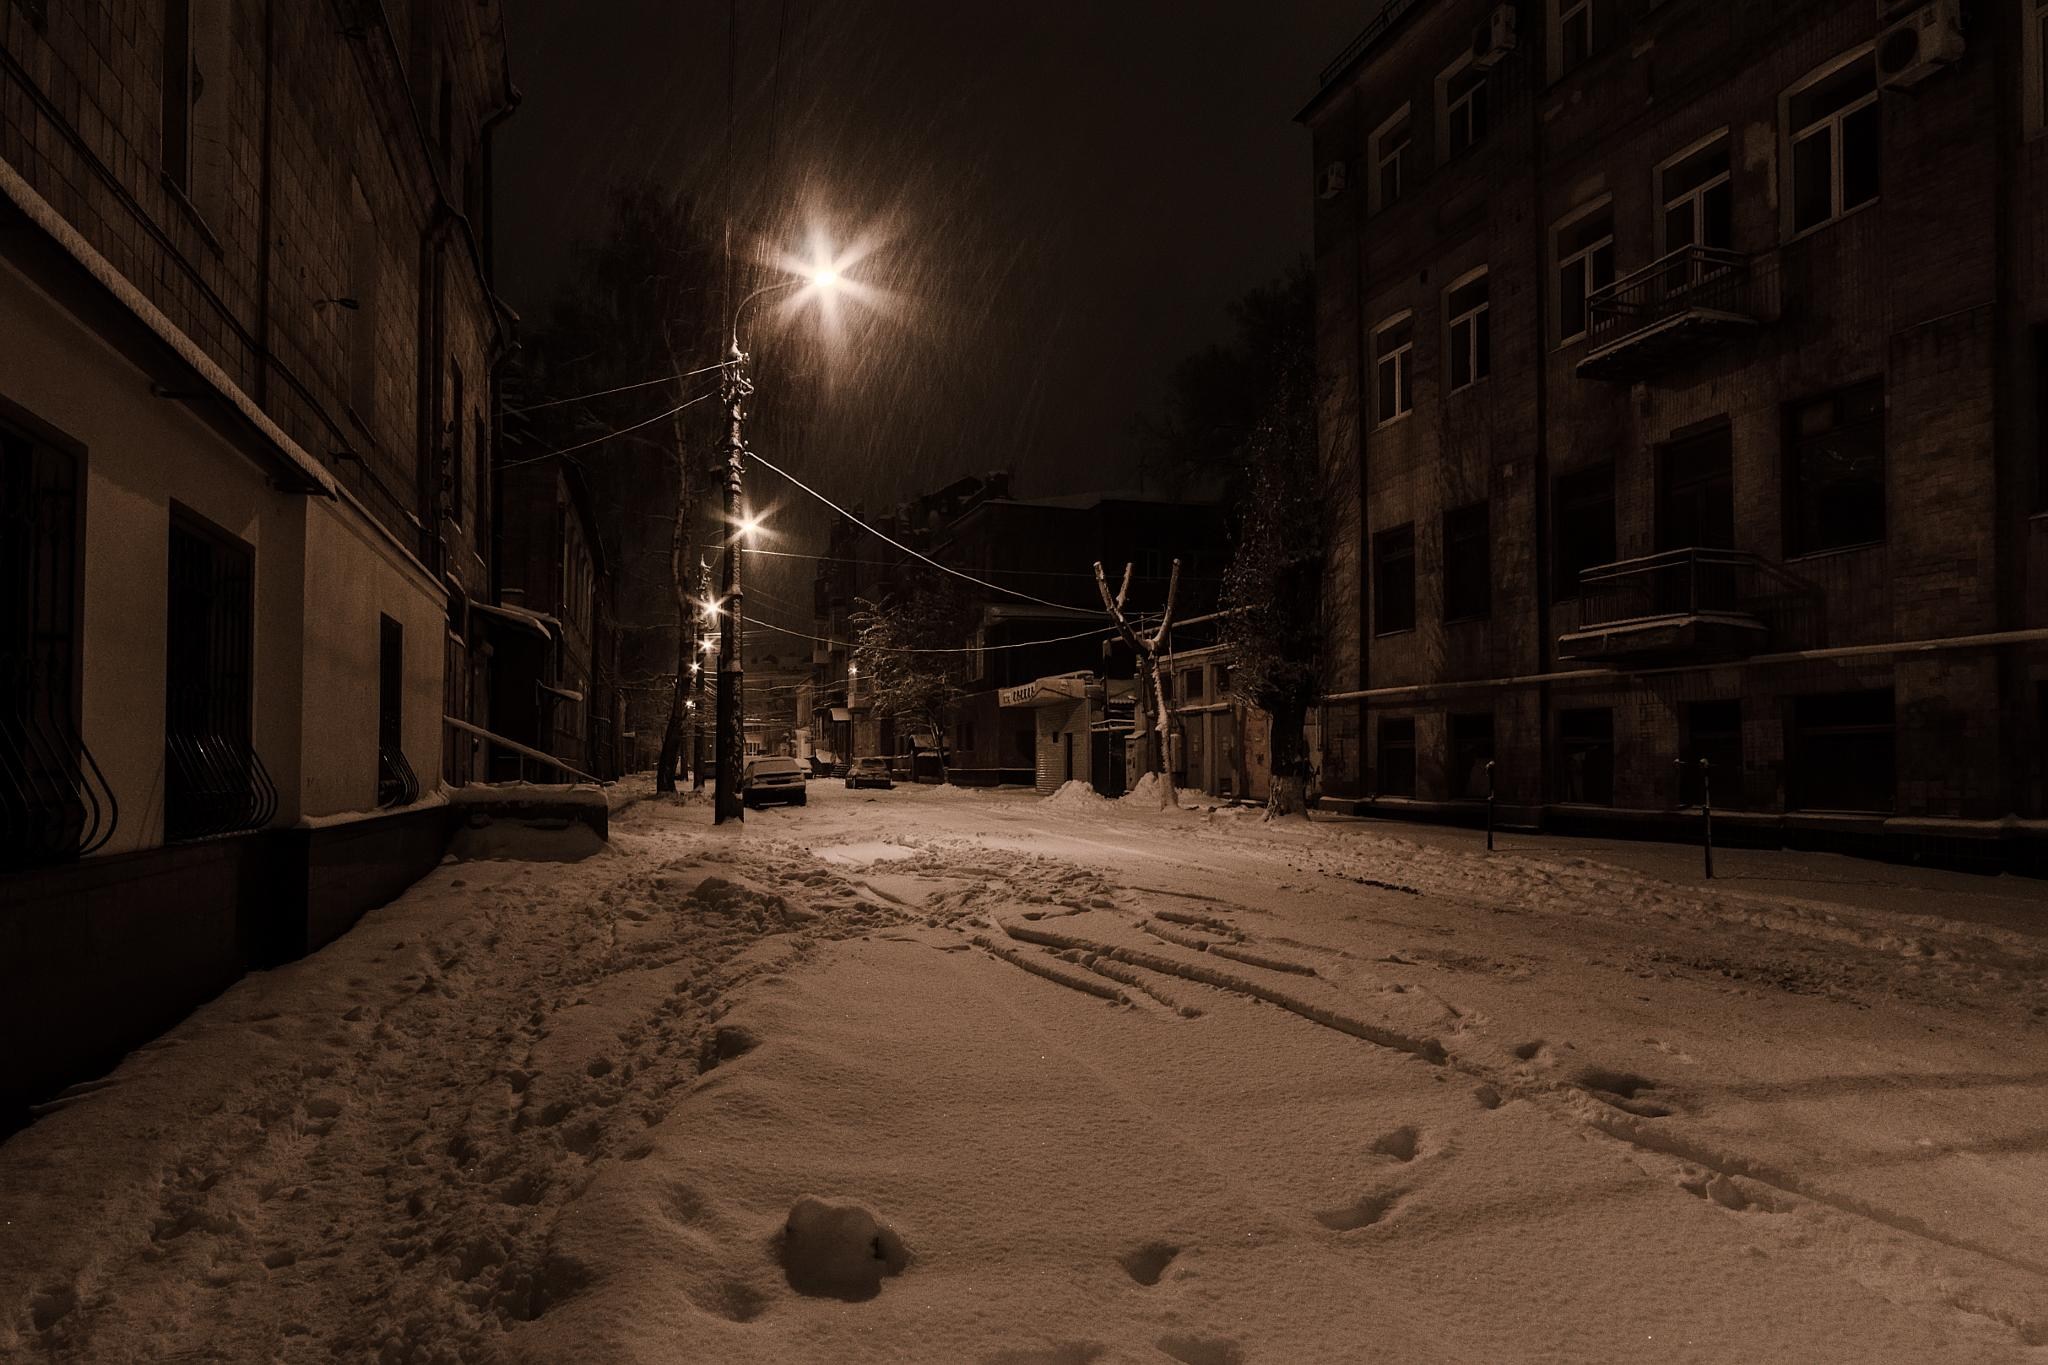 Night streets of the old city. Kharkov. Ukraine by Igor Nayda